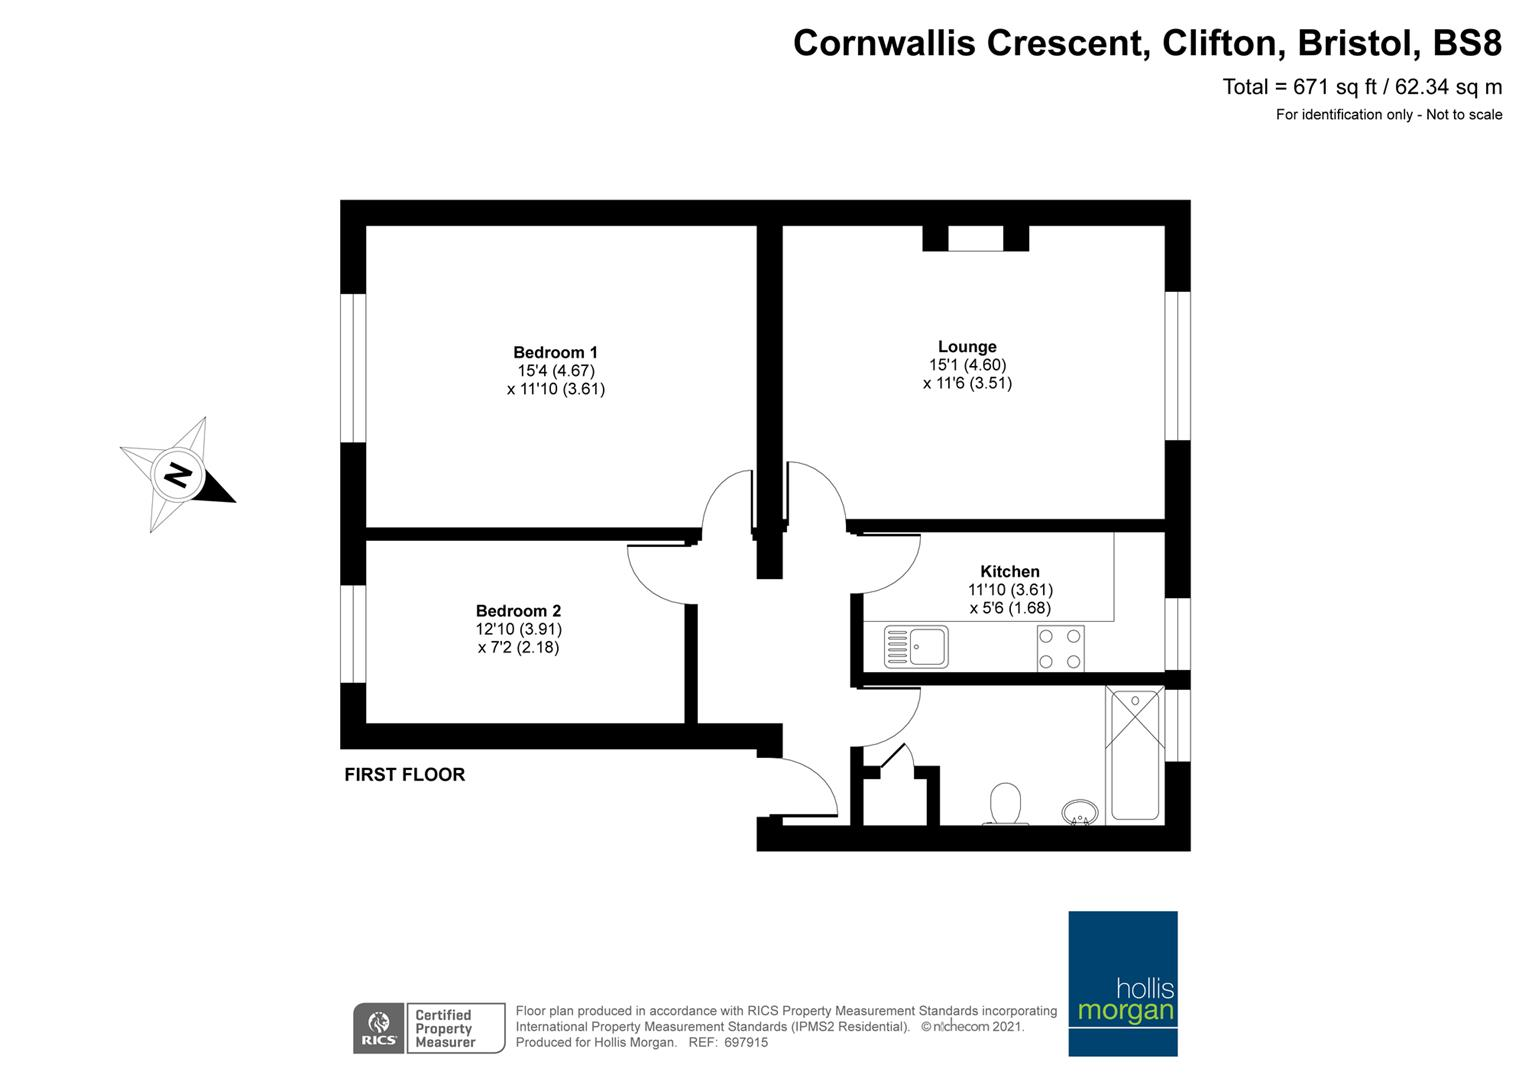 Floorplans For Cornwallis Crescent, Clifton